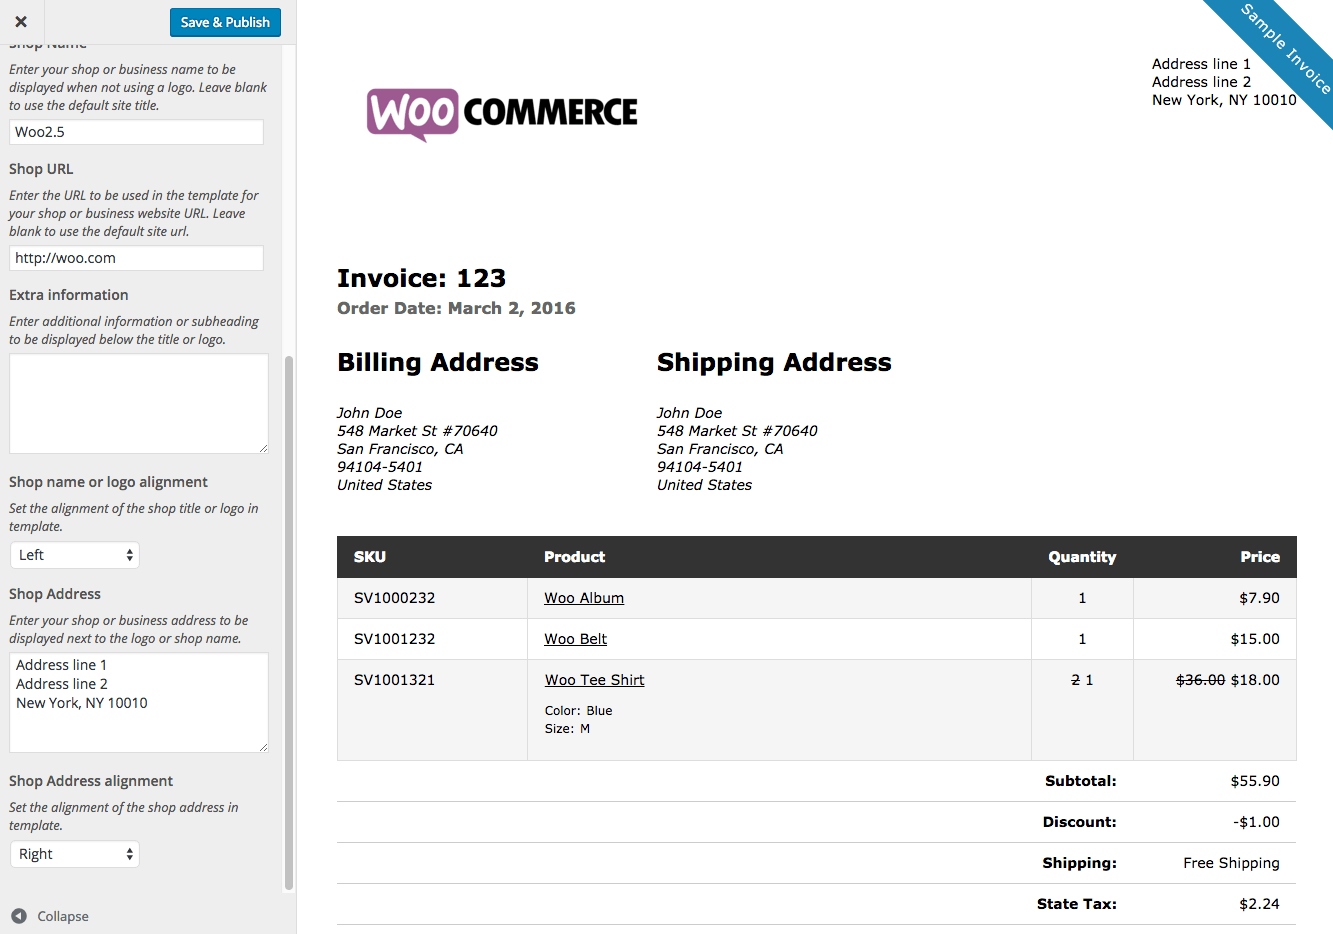 Darkfaderus  Personable Woocommerce Print Invoices Amp Packing Lists  Woocommerce Docs With Exciting Woocommerce Print Invoices  Packing Lists Customizer With Awesome Medical Receipt Template Word Also Receipt For Child Care Services In Addition Receipt Of Order And Sams Receipt Printer As Well As Party City Return Policy No Receipt Additionally Free Printable Cash Receipts From Docswoocommercecom With Darkfaderus  Exciting Woocommerce Print Invoices Amp Packing Lists  Woocommerce Docs With Awesome Woocommerce Print Invoices  Packing Lists Customizer And Personable Medical Receipt Template Word Also Receipt For Child Care Services In Addition Receipt Of Order From Docswoocommercecom